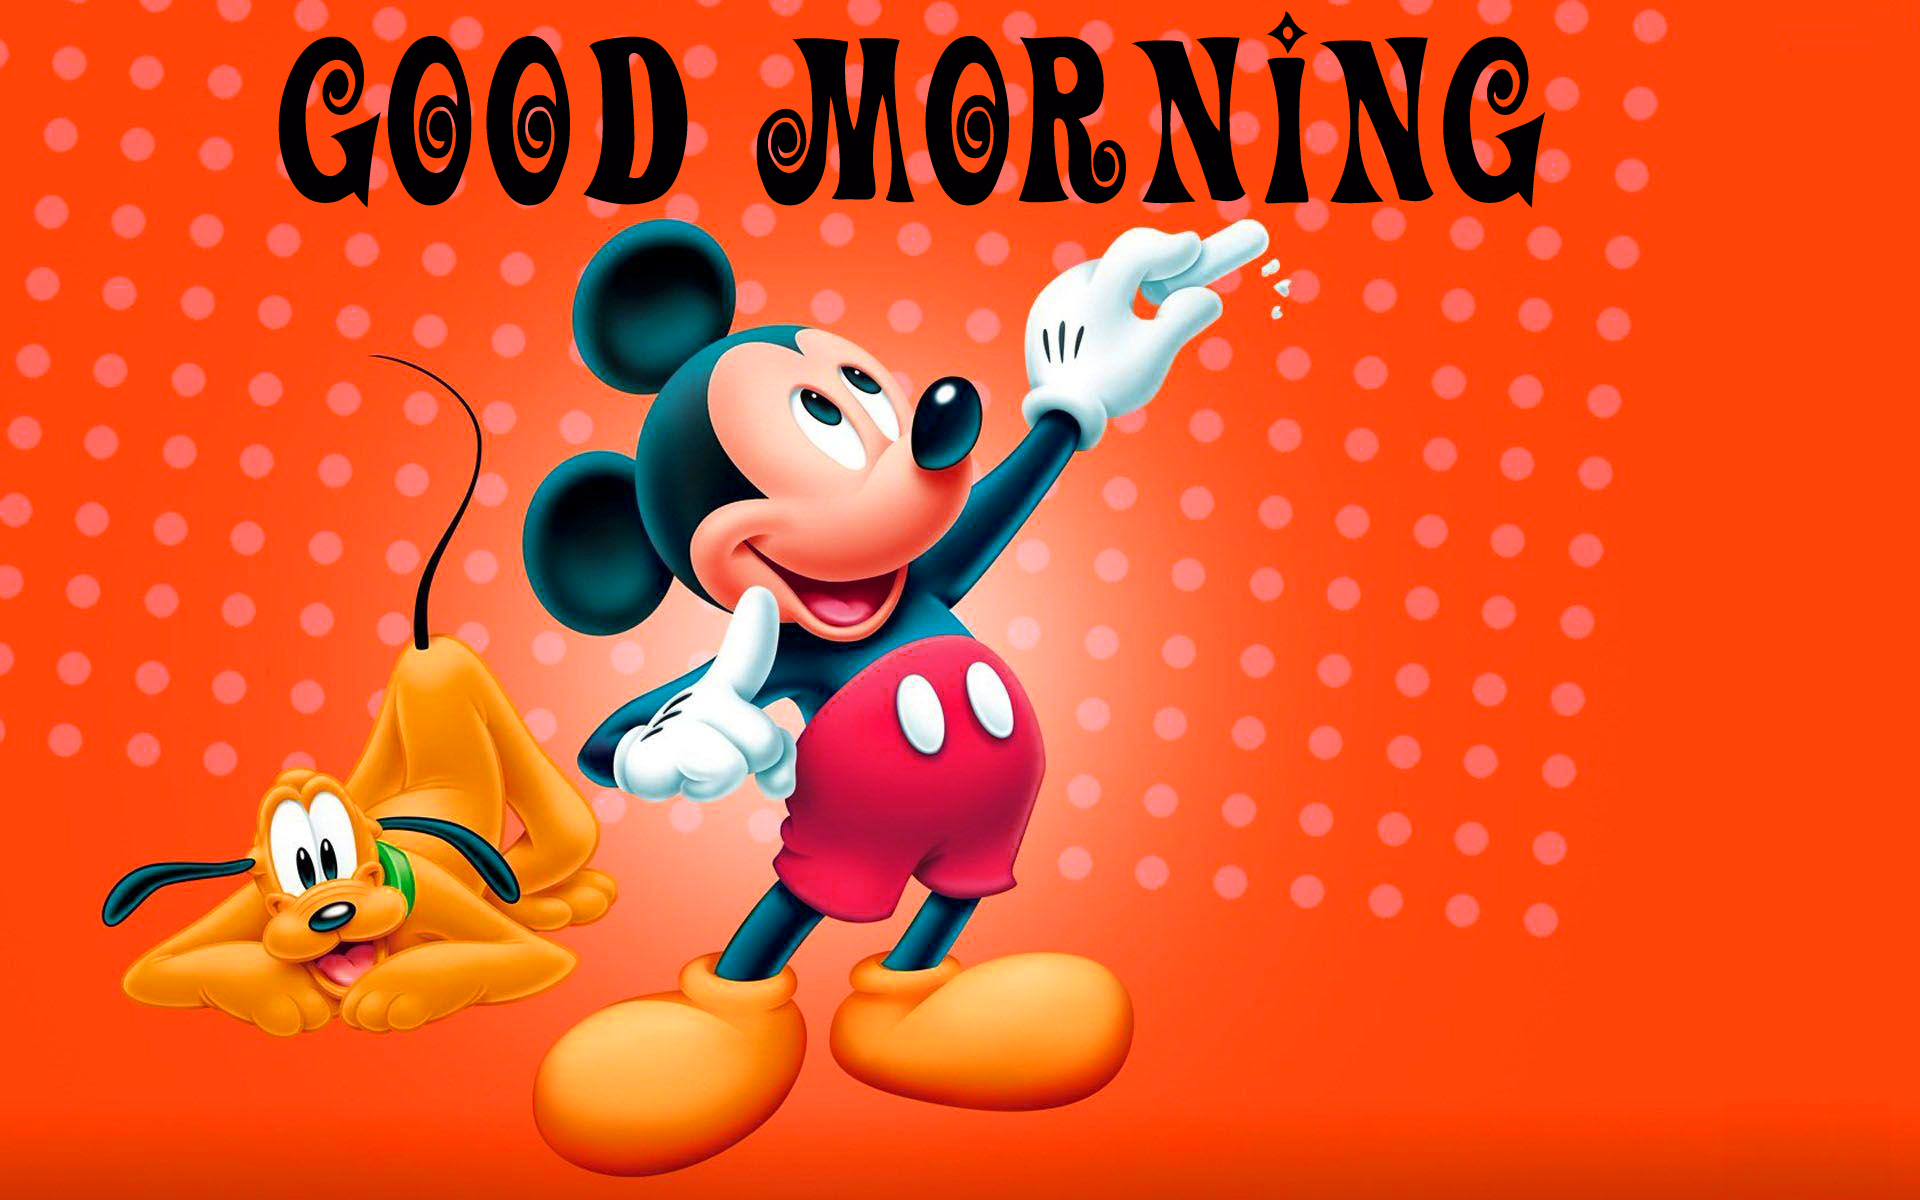 Good morning  wishes with mickey Images Wallpaper Pictures Download